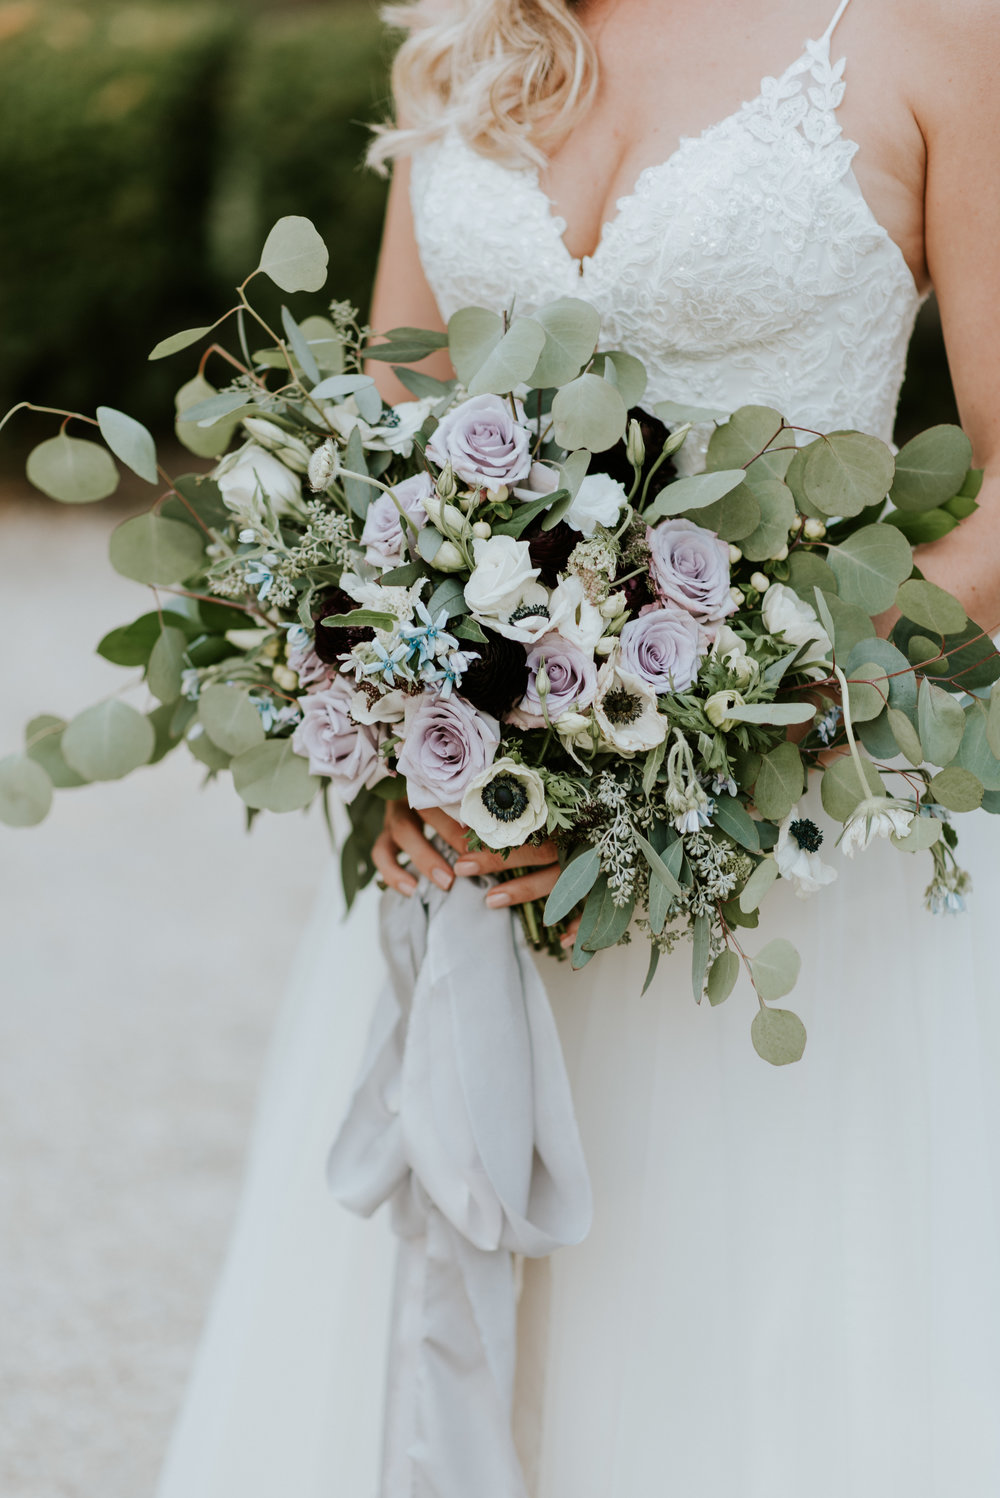 Rustic Oyster Themed Eastern Shore Maryland Outdoor Wedding by East Made Event Company Wedding Planner and Bekah Kay Creative907 (1).jpg